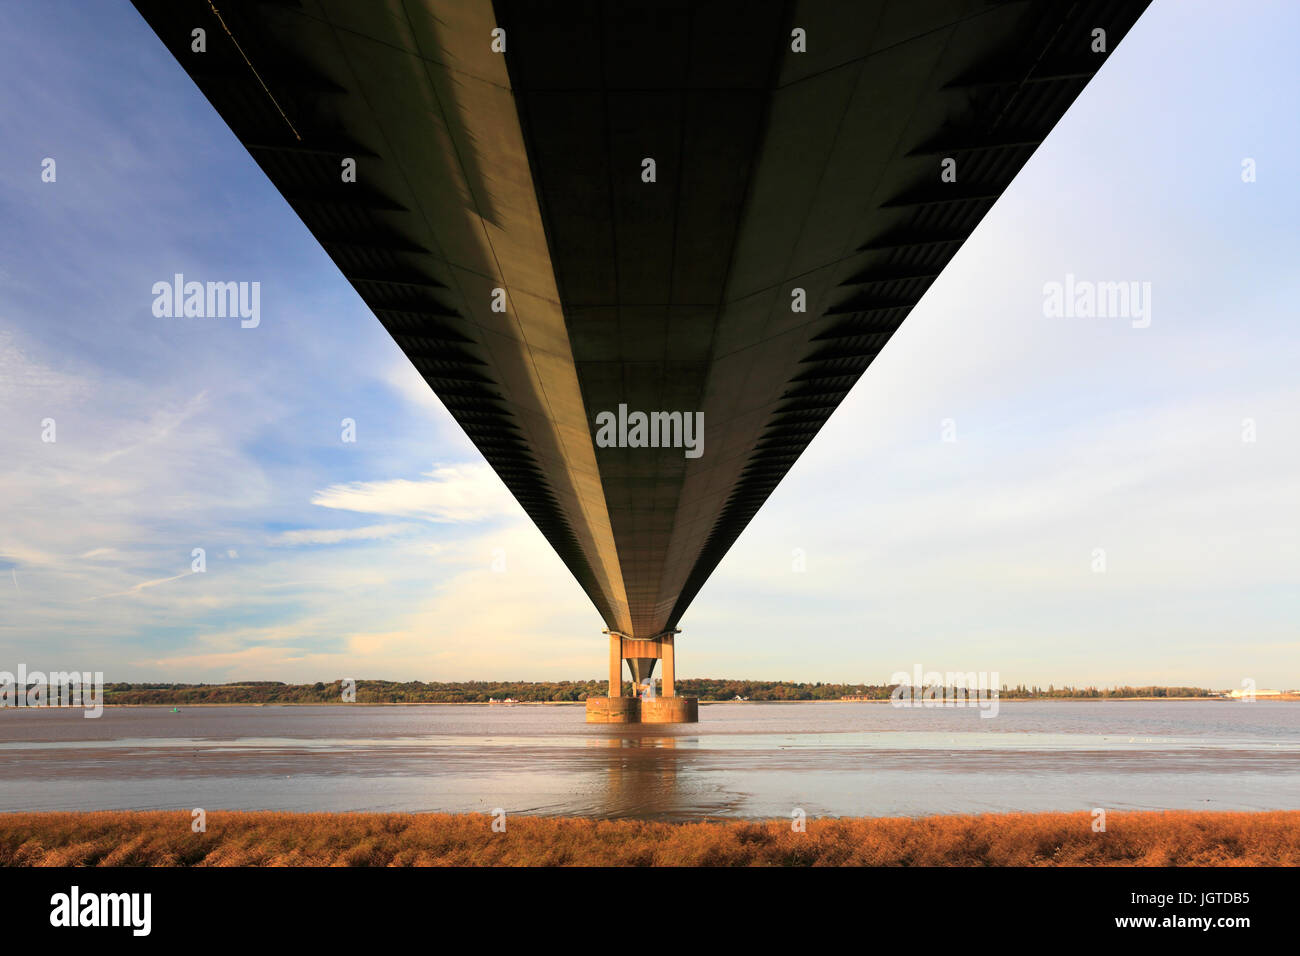 Autumn, Humber Bridge, from Barton-upon-Humber village side, East Riding of Yorkshire, England - Stock Image